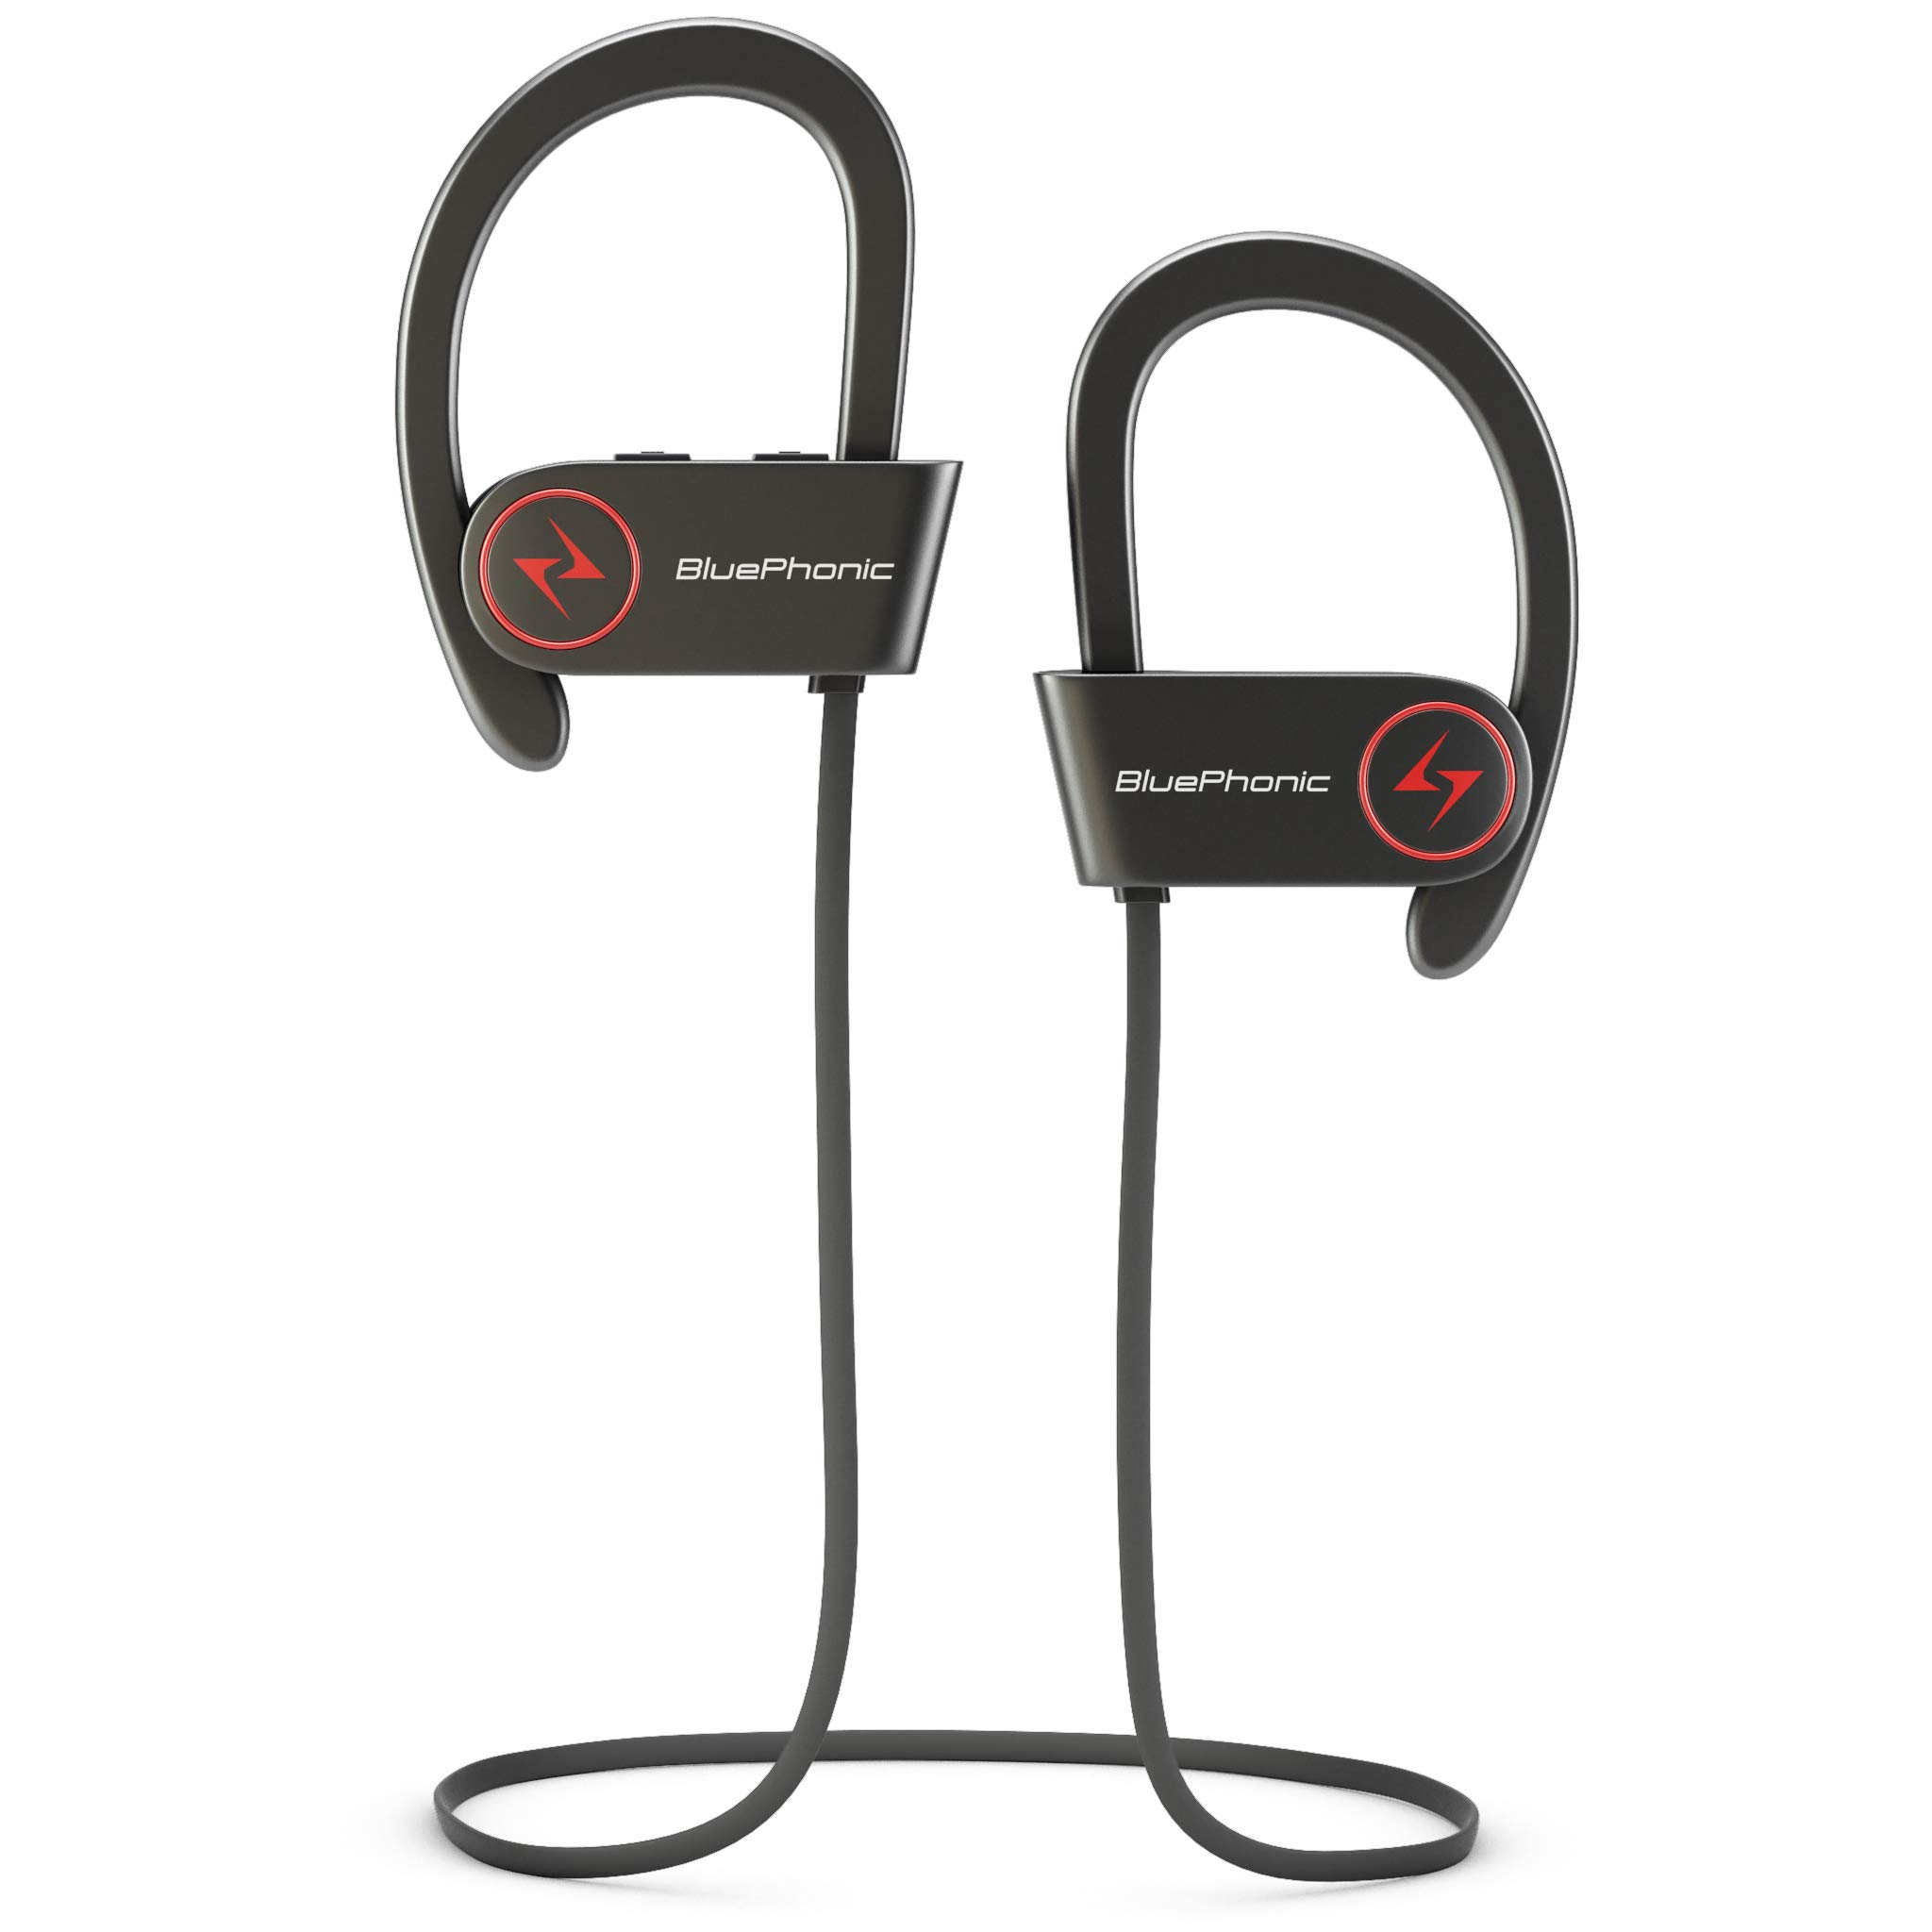 Bluephonic Wireless Sport Bluetooth Headphones, Hd Beats Sound Quality, Sweat Proof Stable Fit in Ear Workout Earbuds, Ergonomic Running Earphones, Noise Cancelling Microphone (Black) by BluePhonic